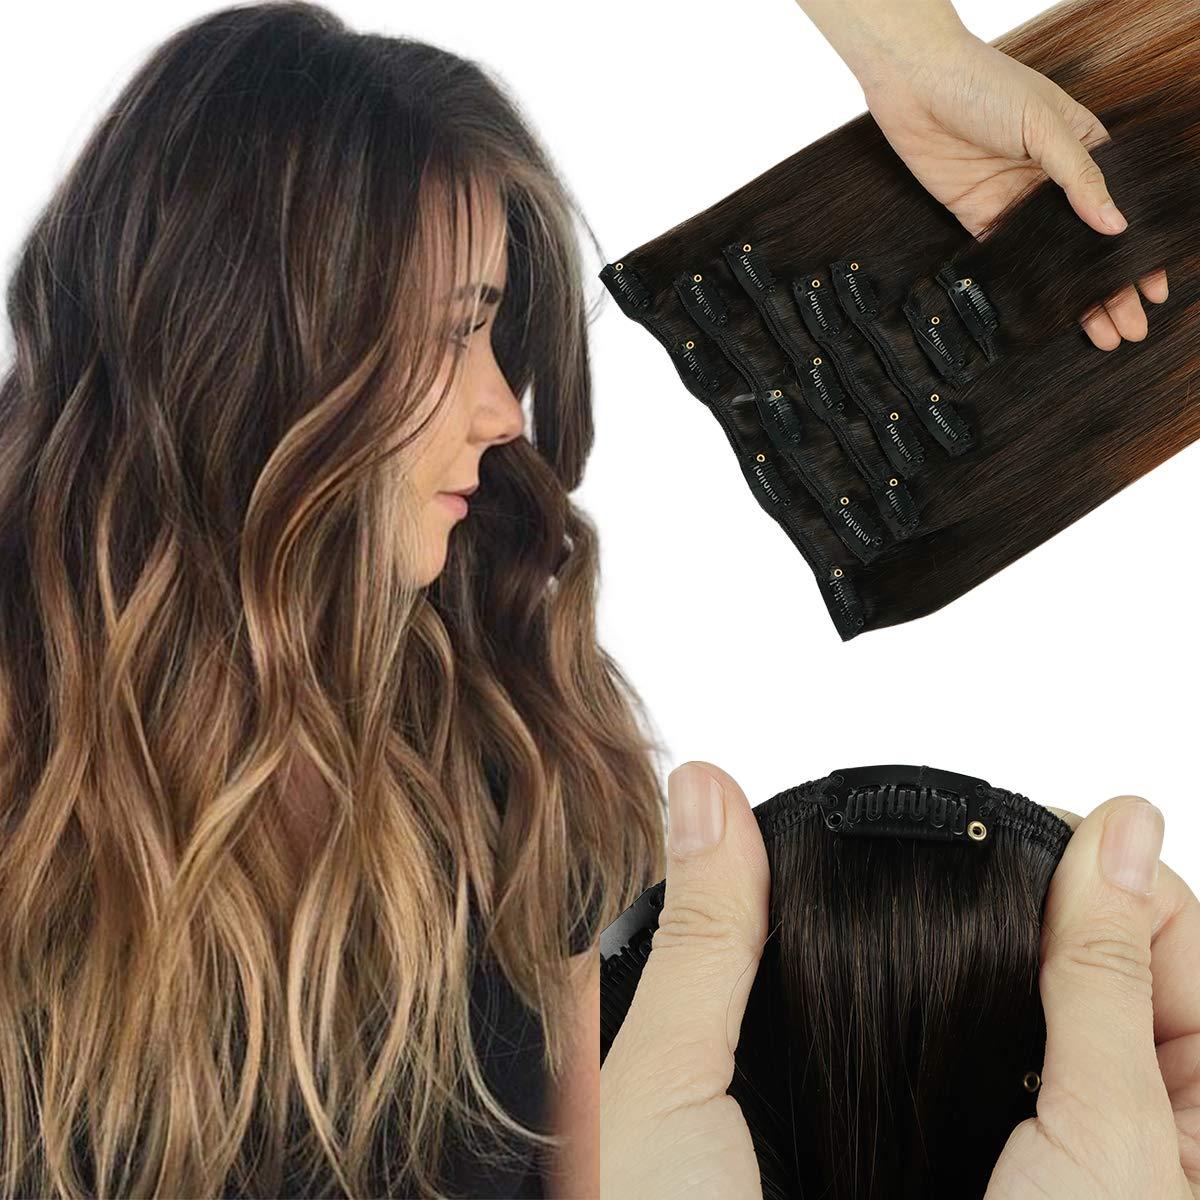 SWINGINGHAIR Reservation Real Human Hair Clip Ombre in B 4 years warranty Extensions Balayage